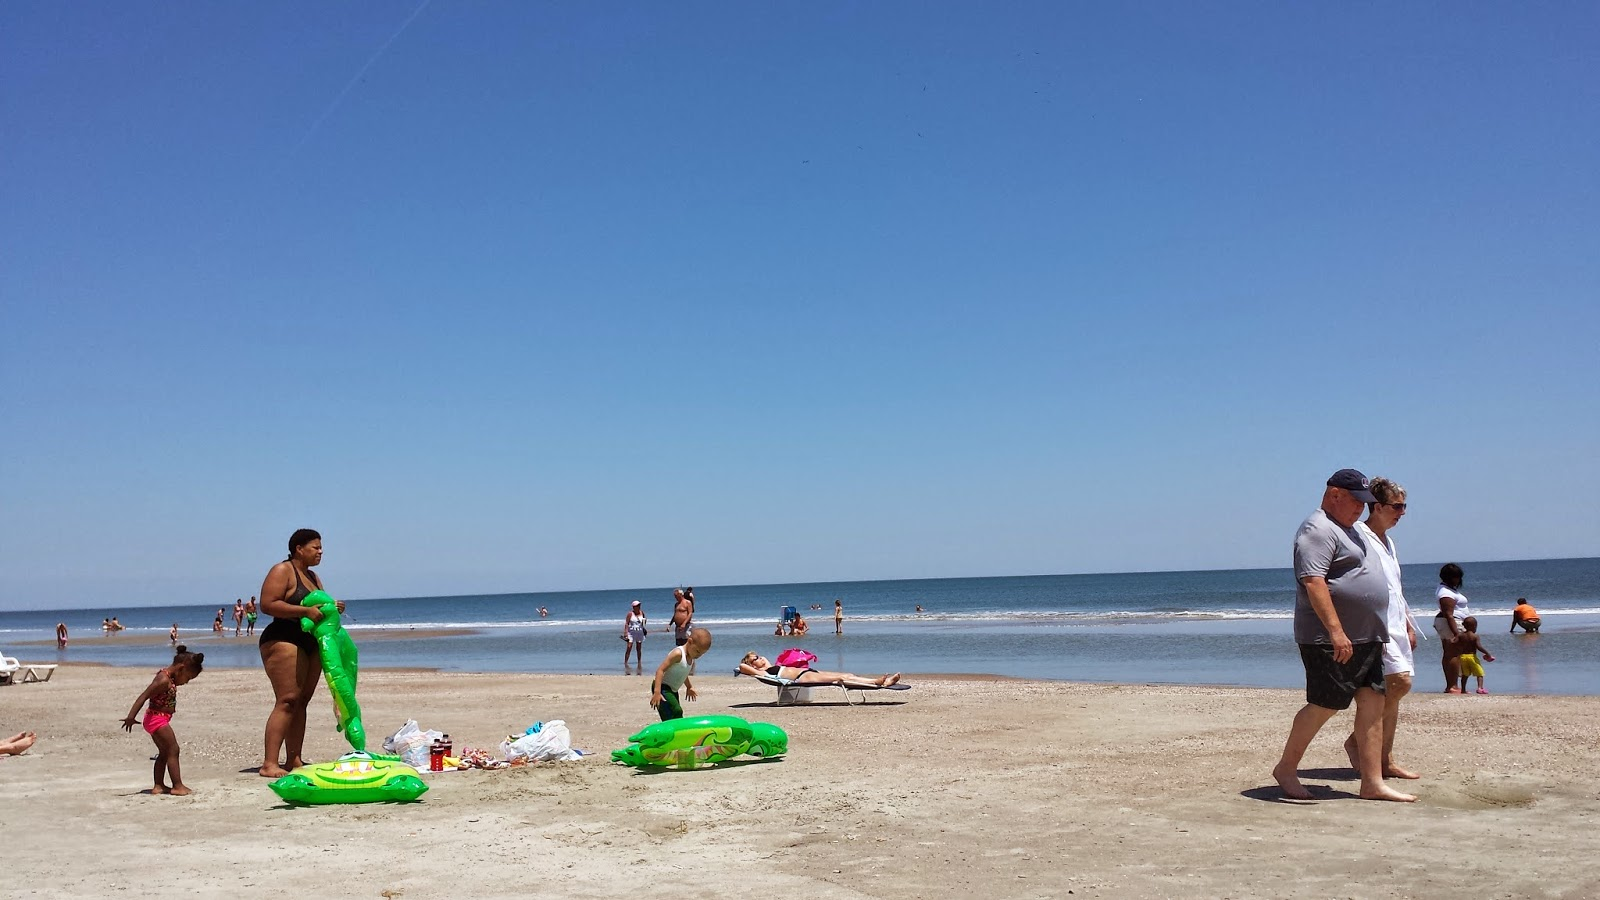 The Beach At Tybee Island